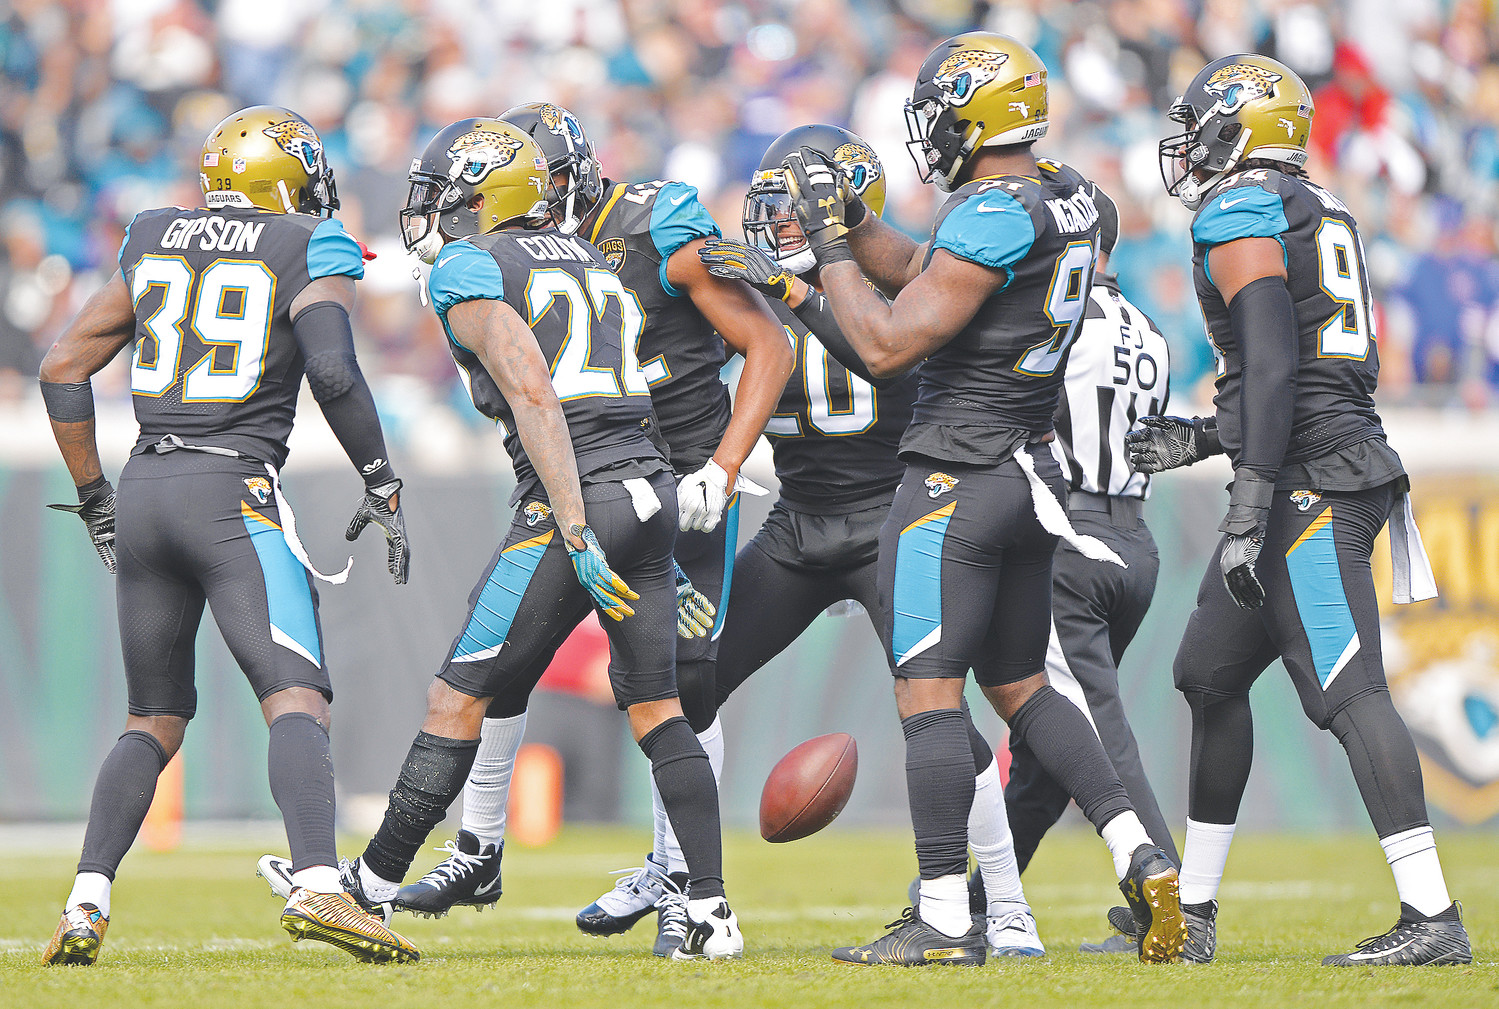 The Jaguars' defense celebrates a big play during the wildcard win against the Bills.